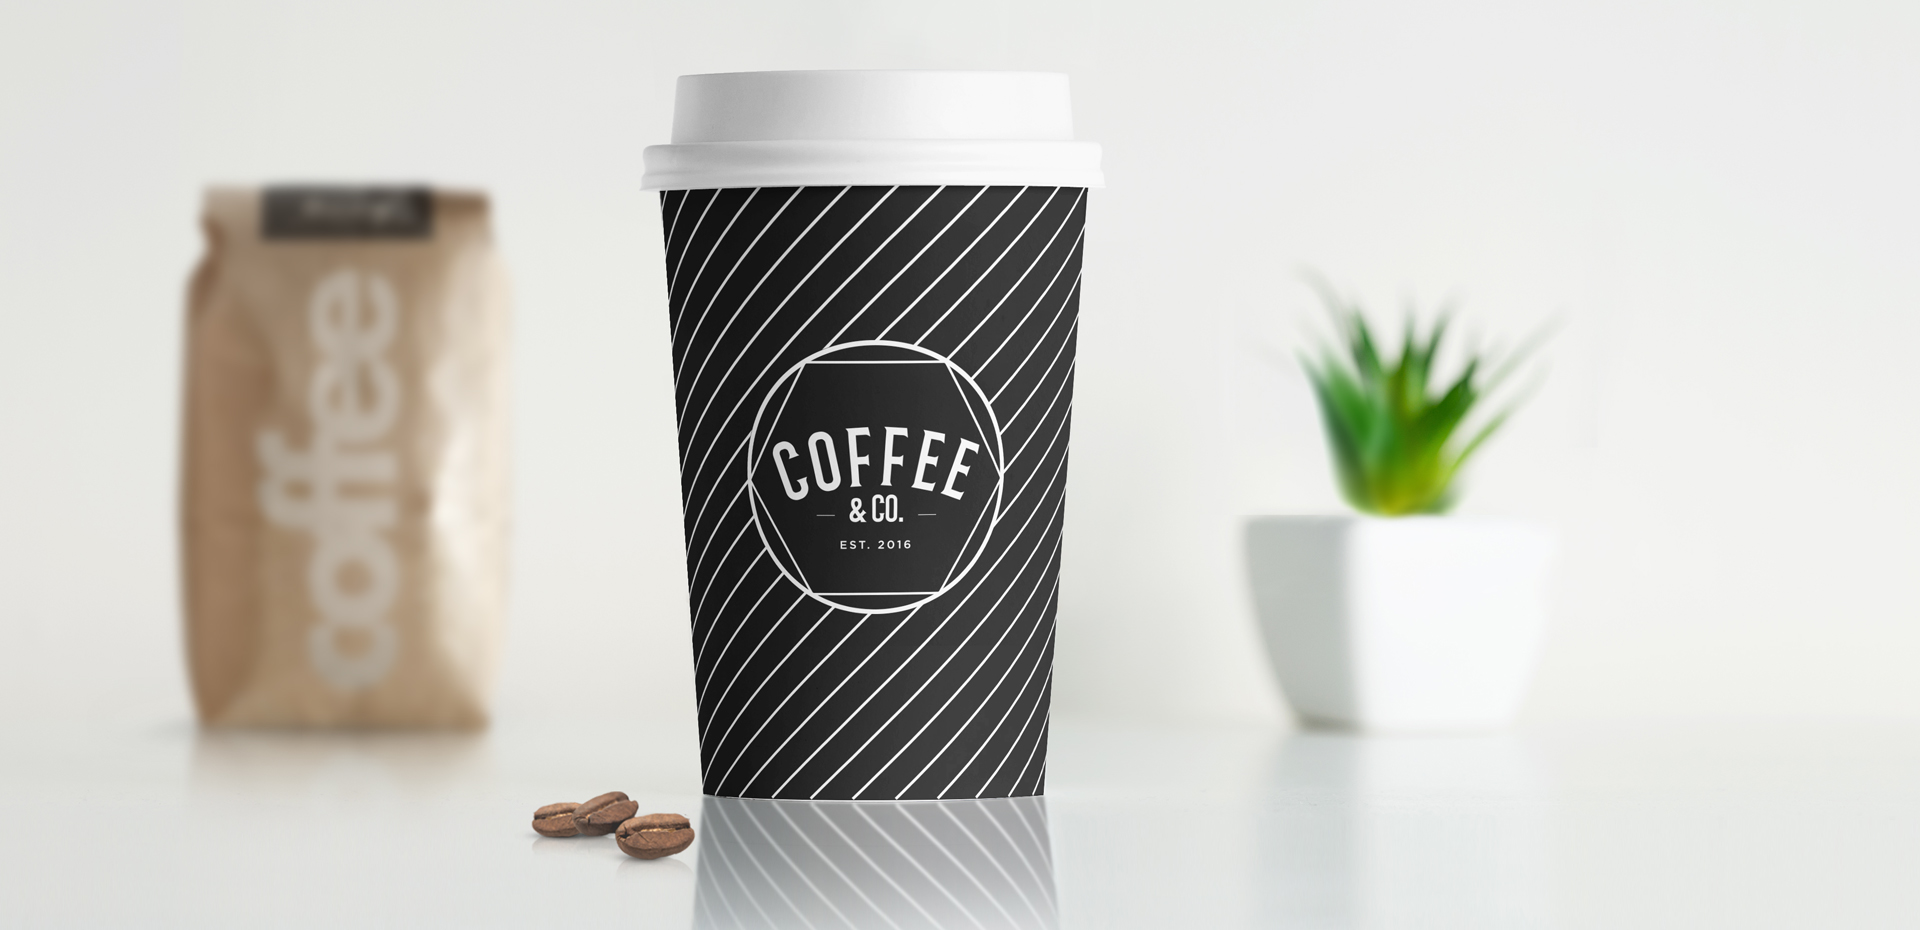 Coffee & Co. logo on coffee cup full size